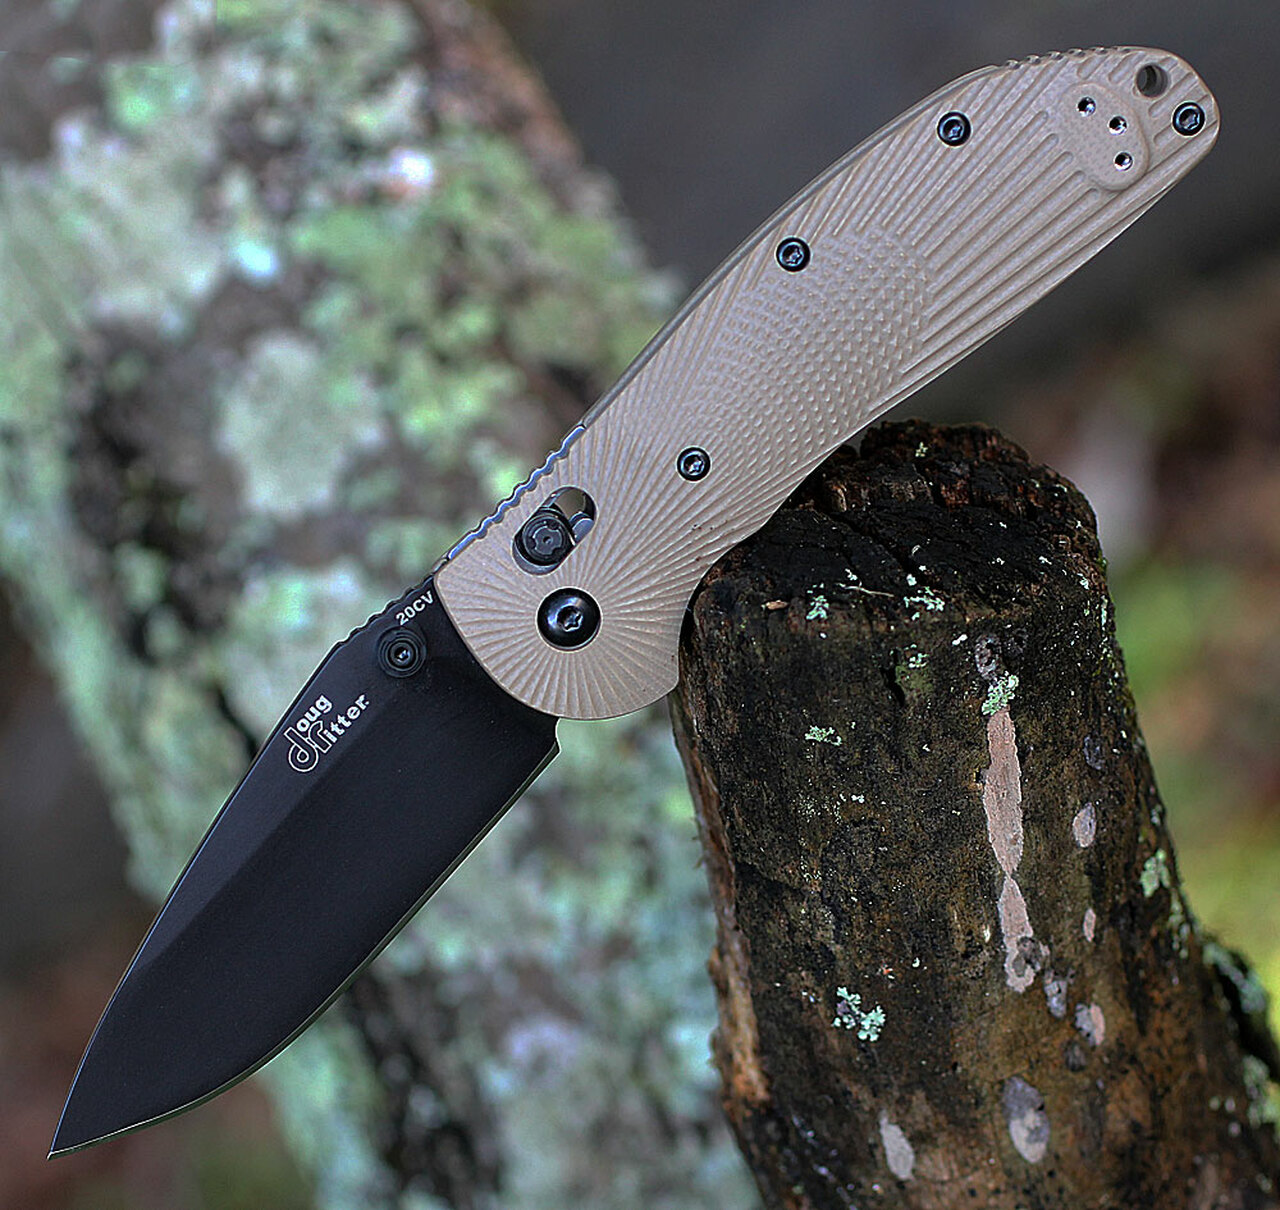 Doug Ritter RSK® MK1-G2 Knifeworks Exclusive - Flat Dark Earth/ Black, DR54183